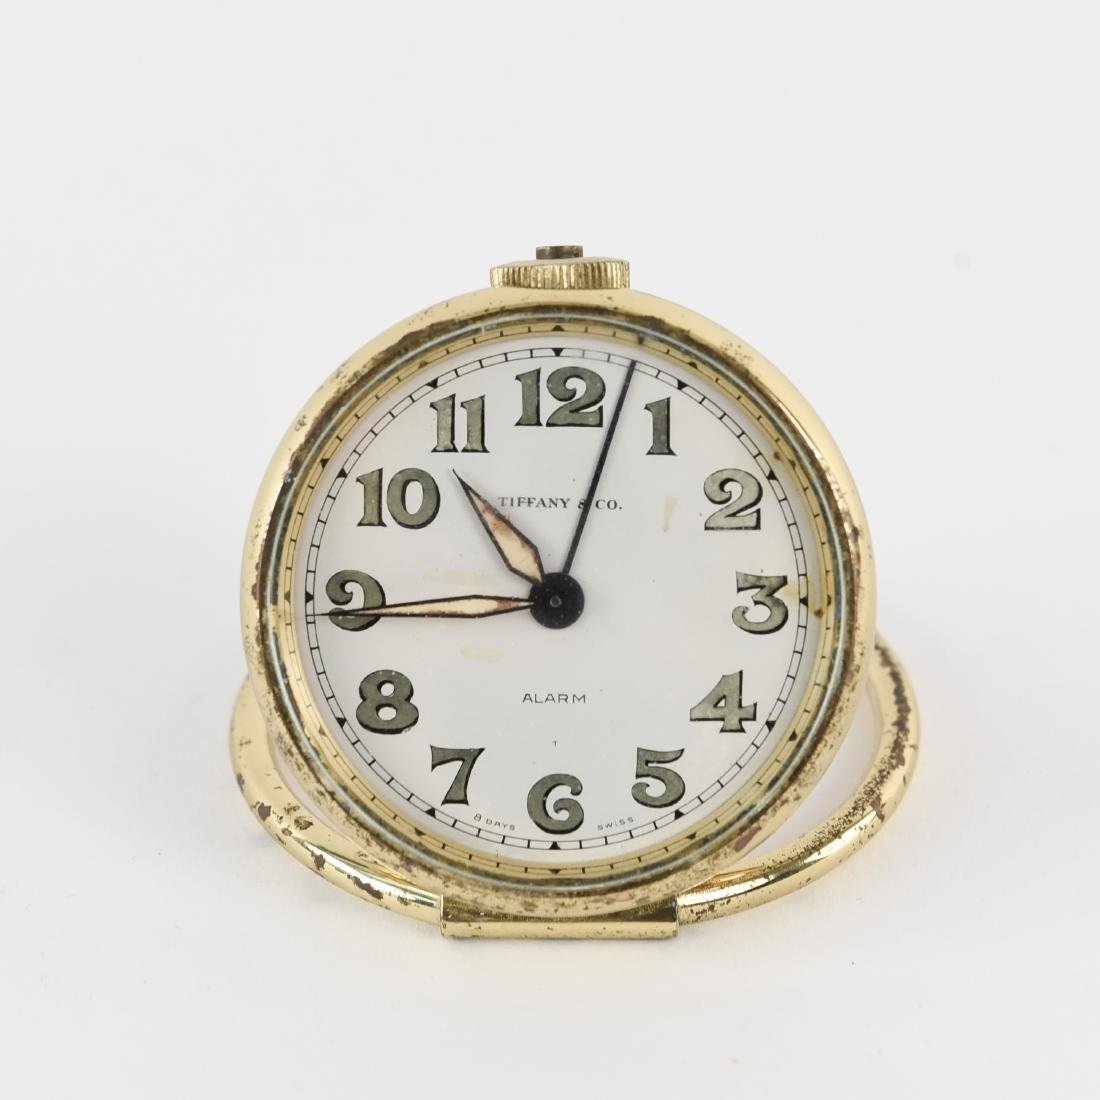 TIFFANY & CO. TRAVEL ALARM CLOCK